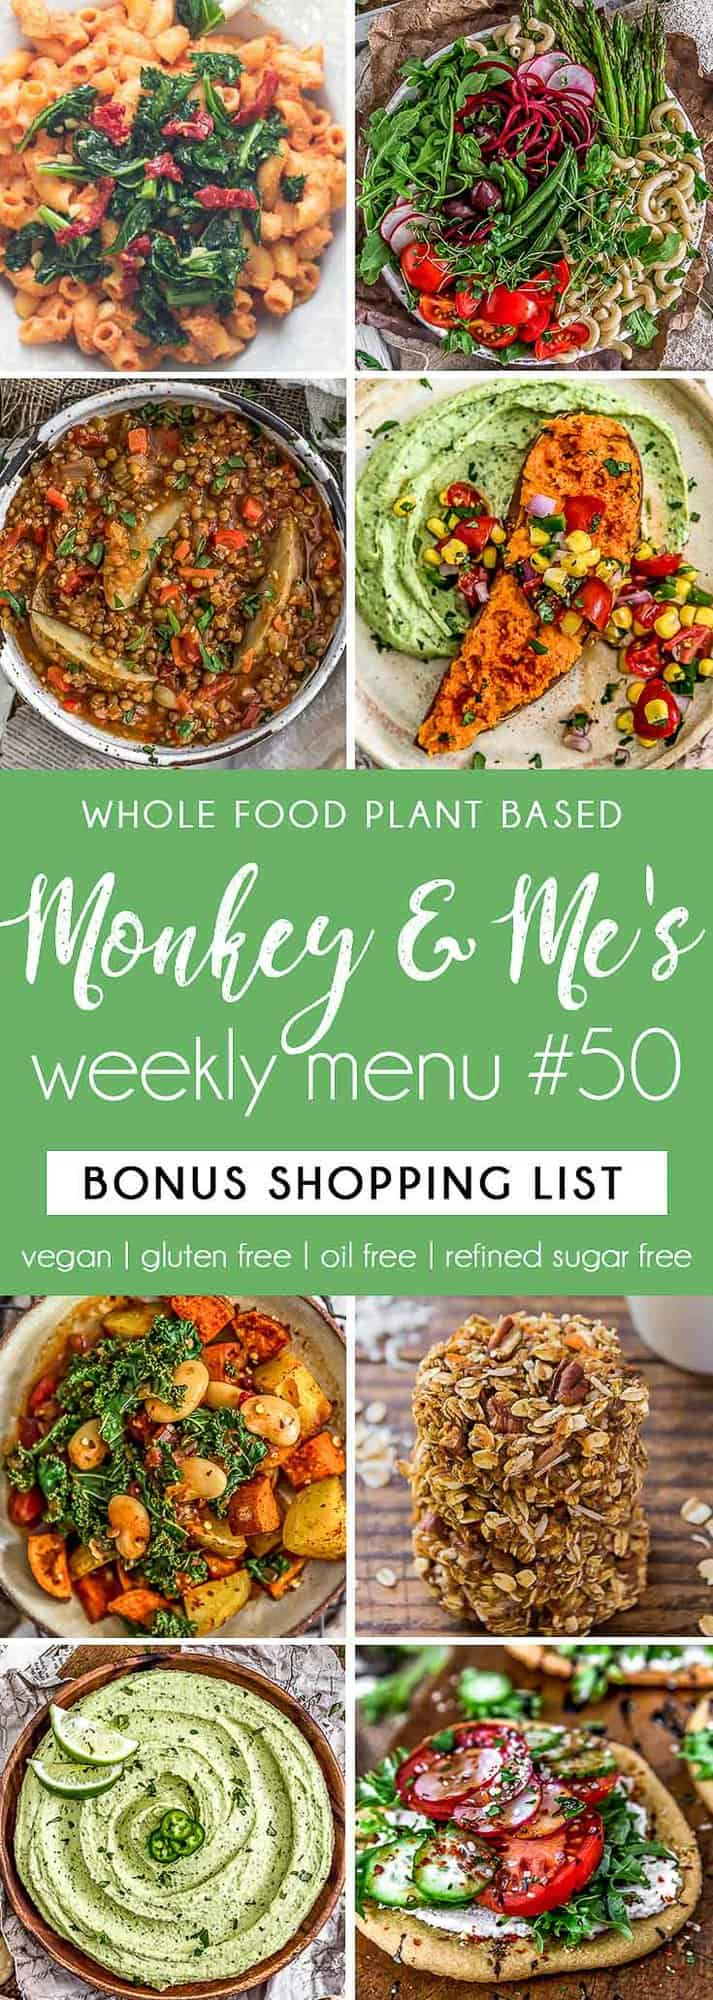 Monkey and Me's Menu 50 featuring 8 recipes